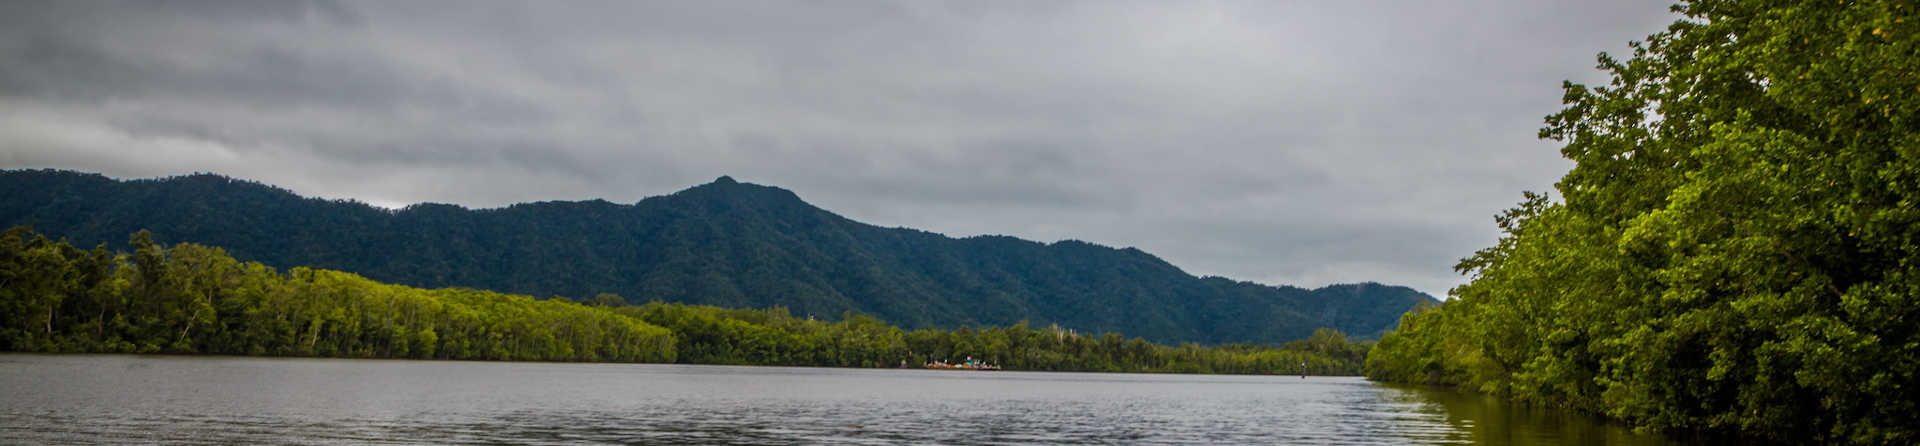 How much does it cost to go to the Daintree rainforest?